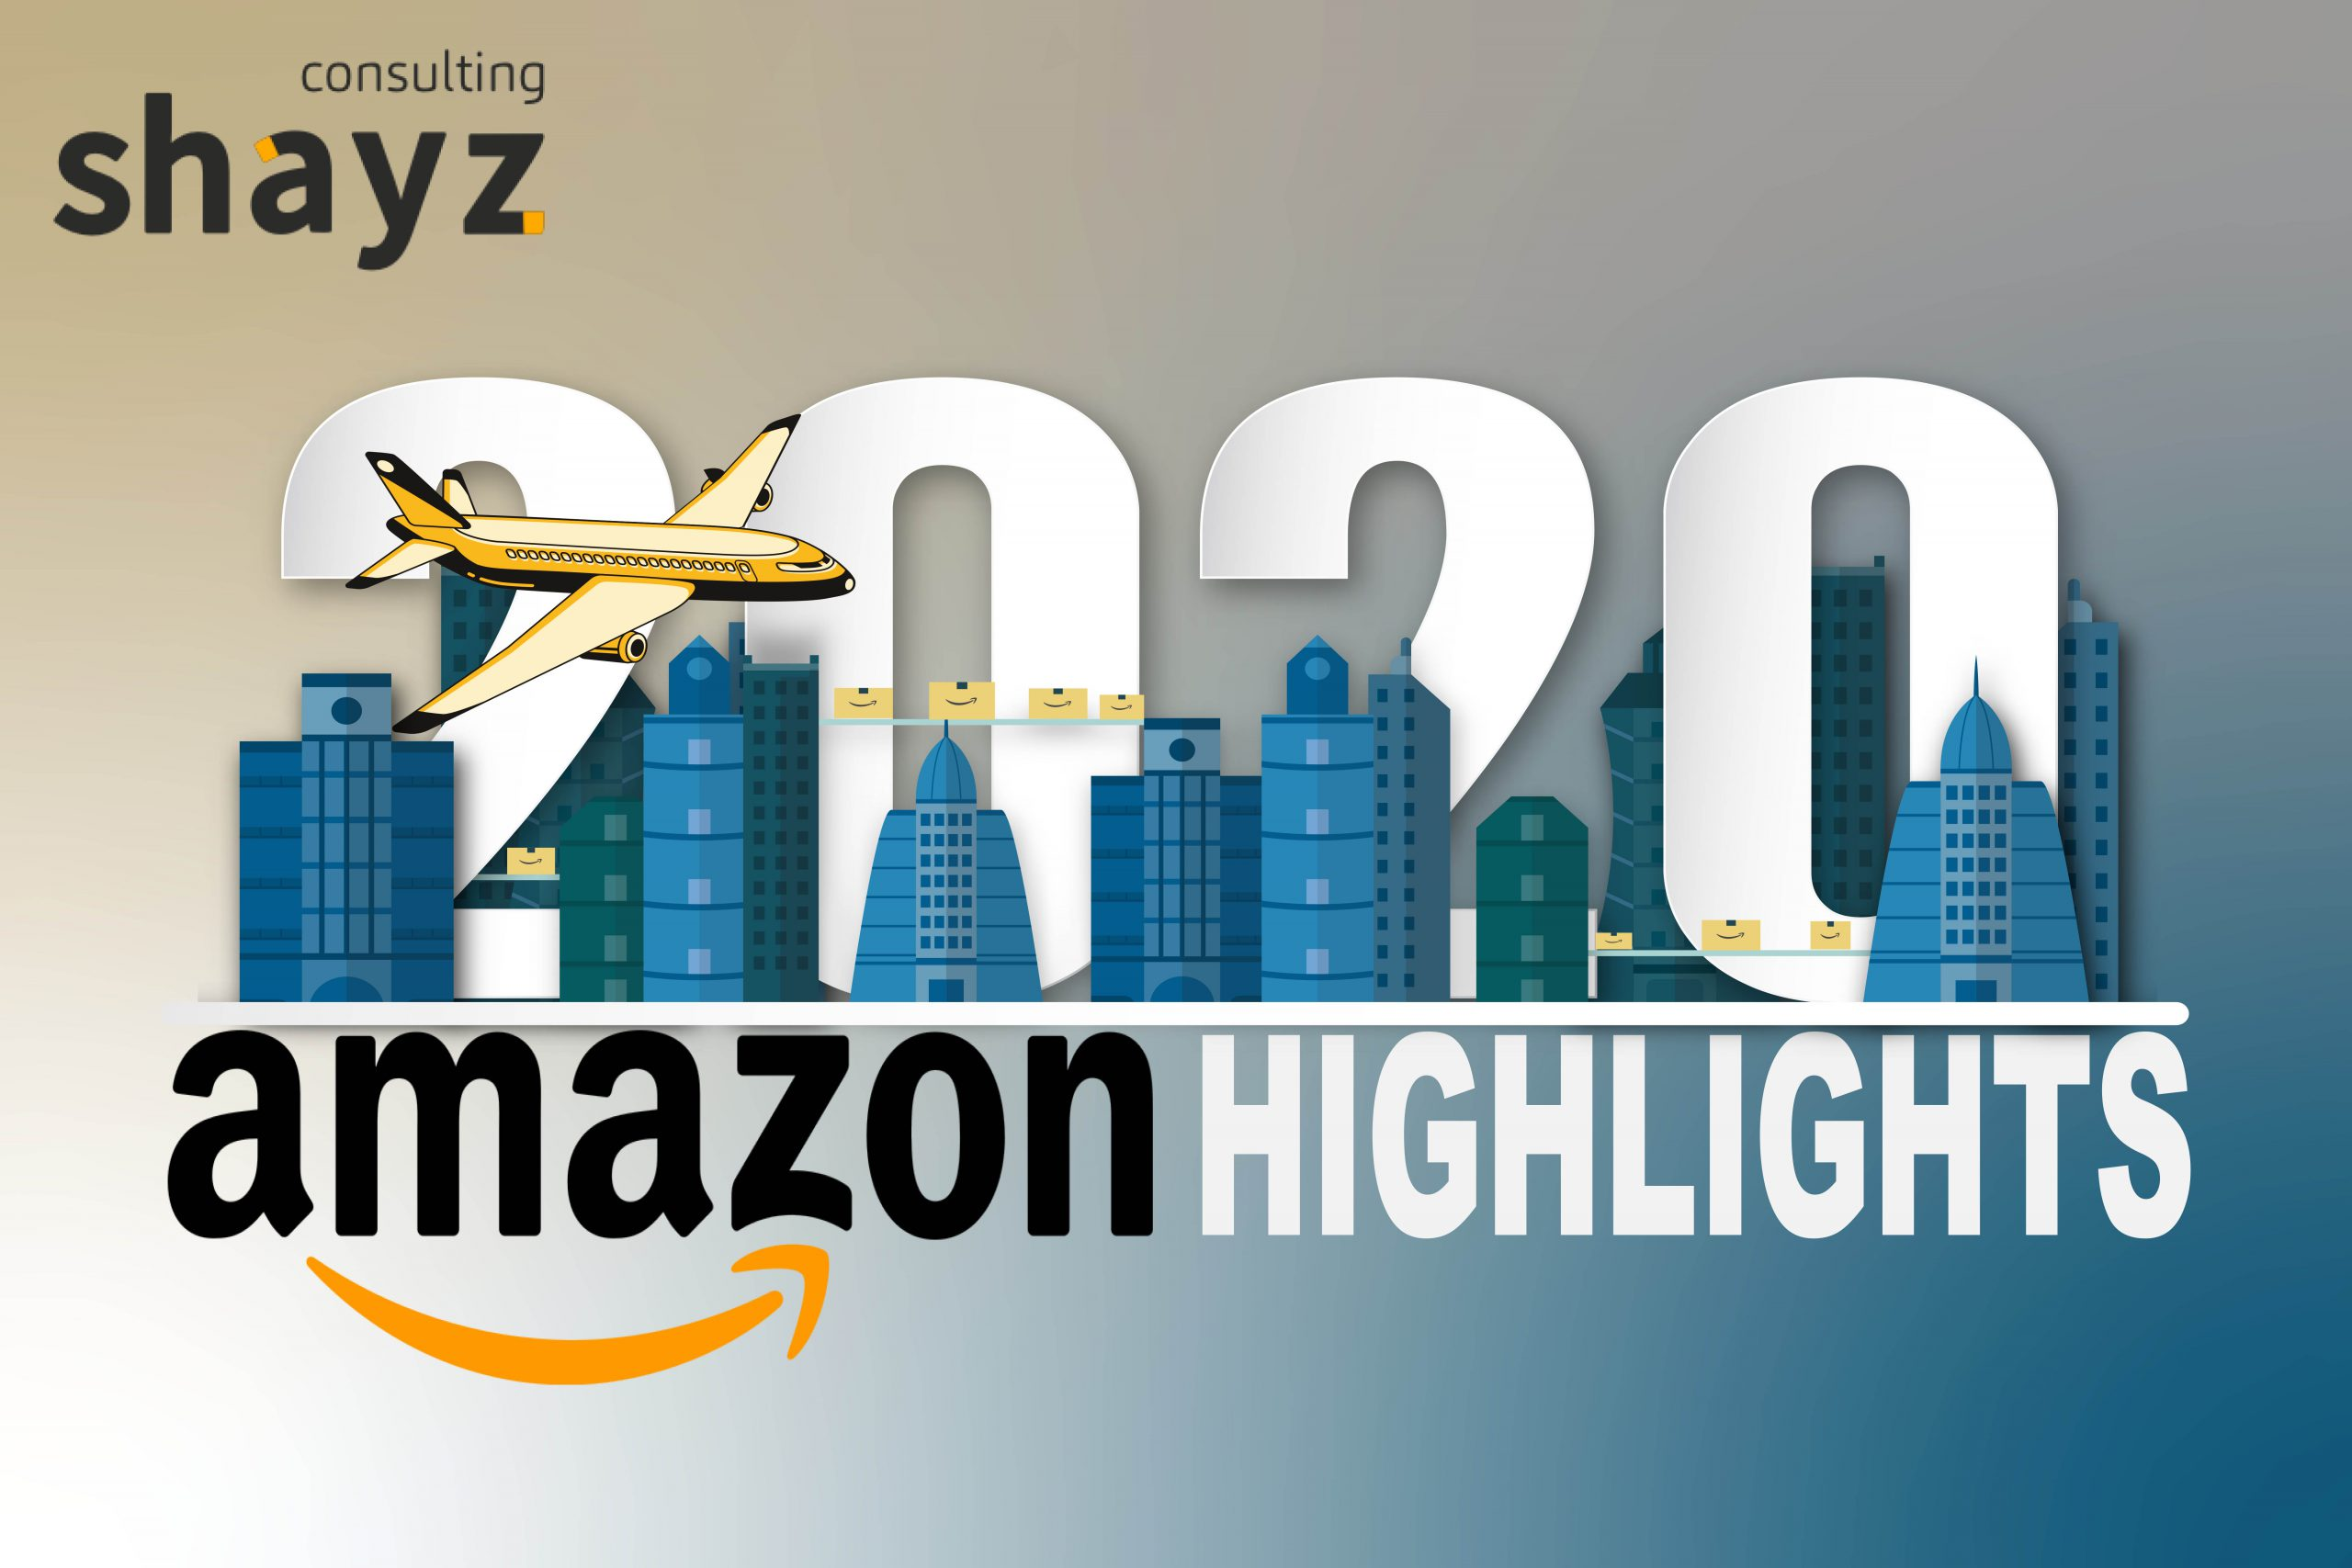 Amazon 2020 Highlights